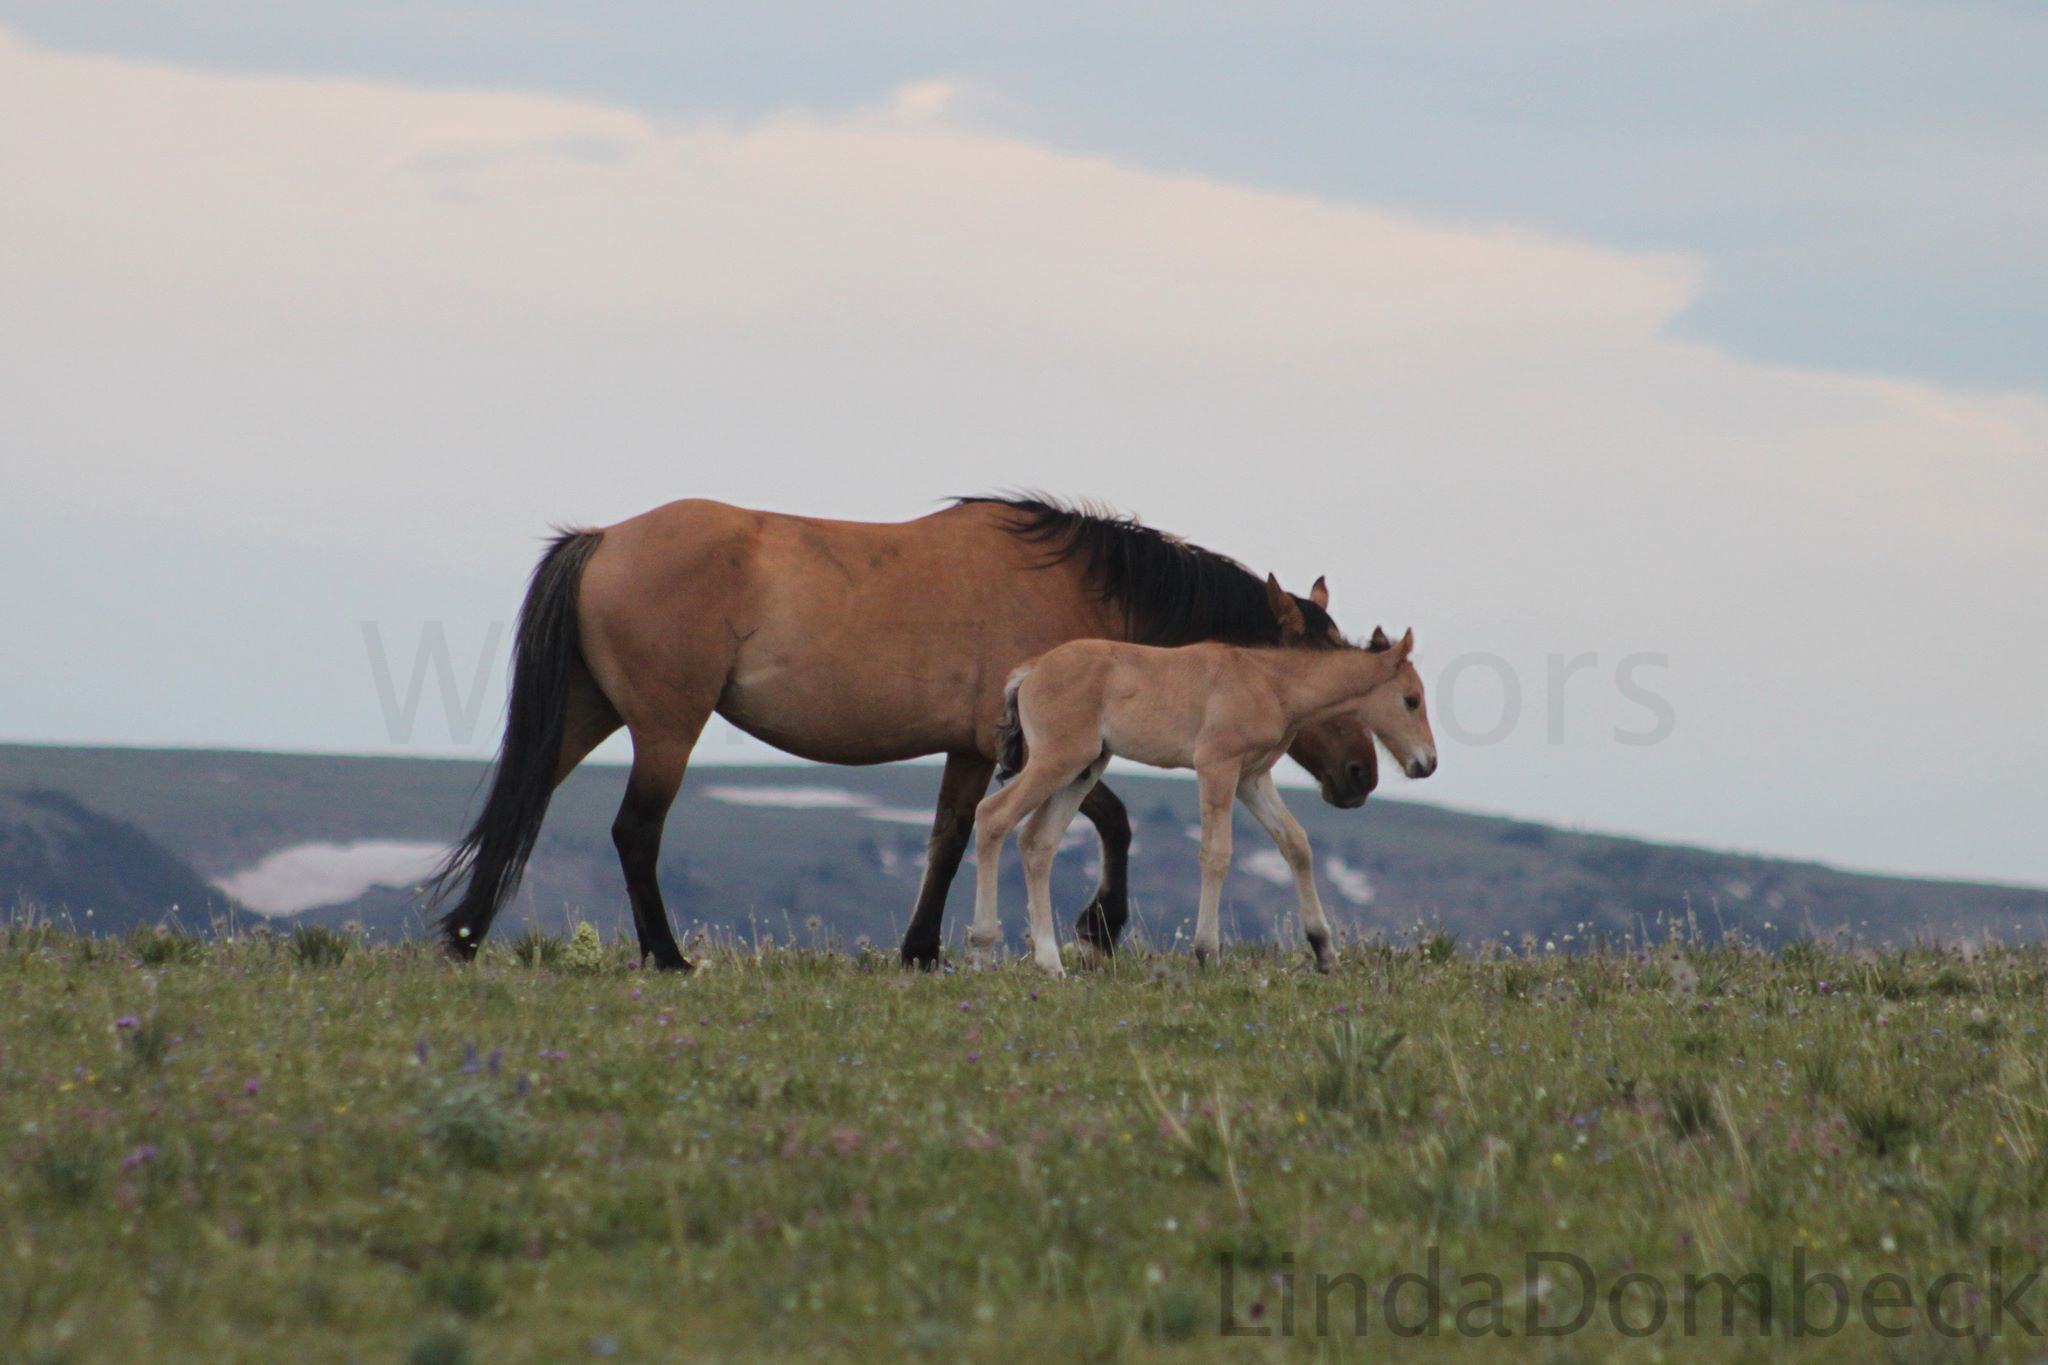 Fools Gold and her new foal.  Photo by Linda Dombeck